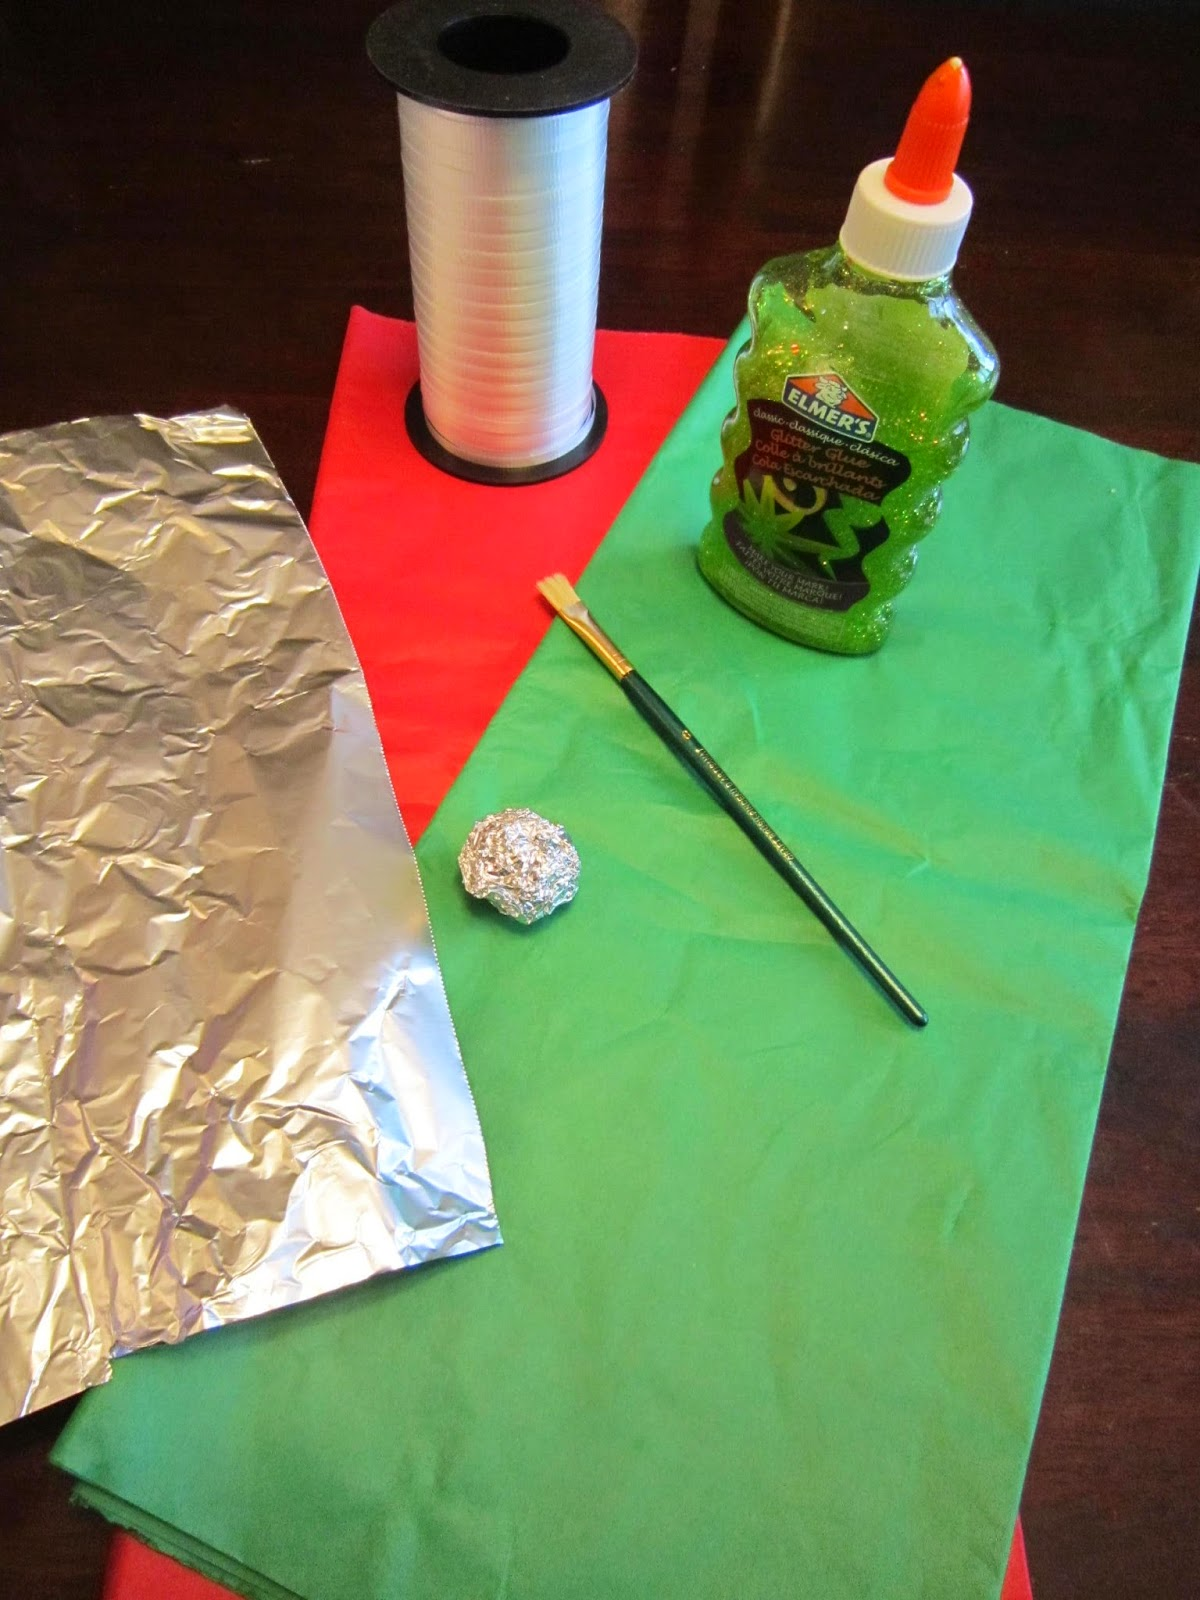 Foil and tissue Christmas ornament craft